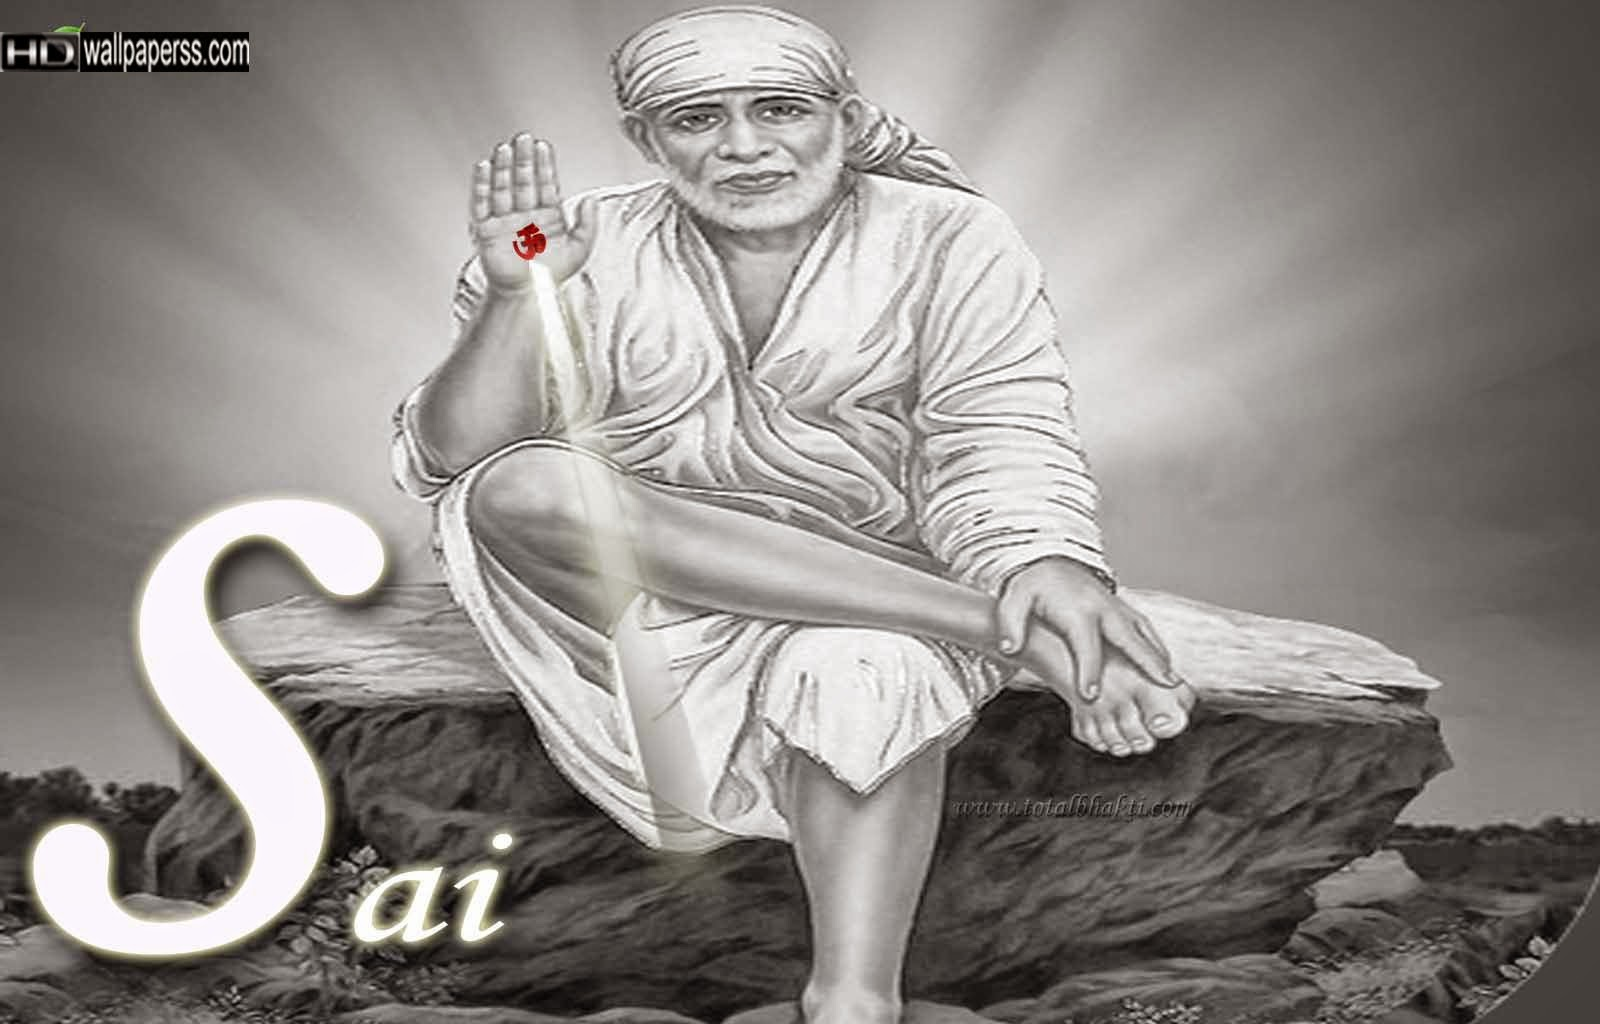 7 best <b>saibaba wallpapers images</b> on Pinterest